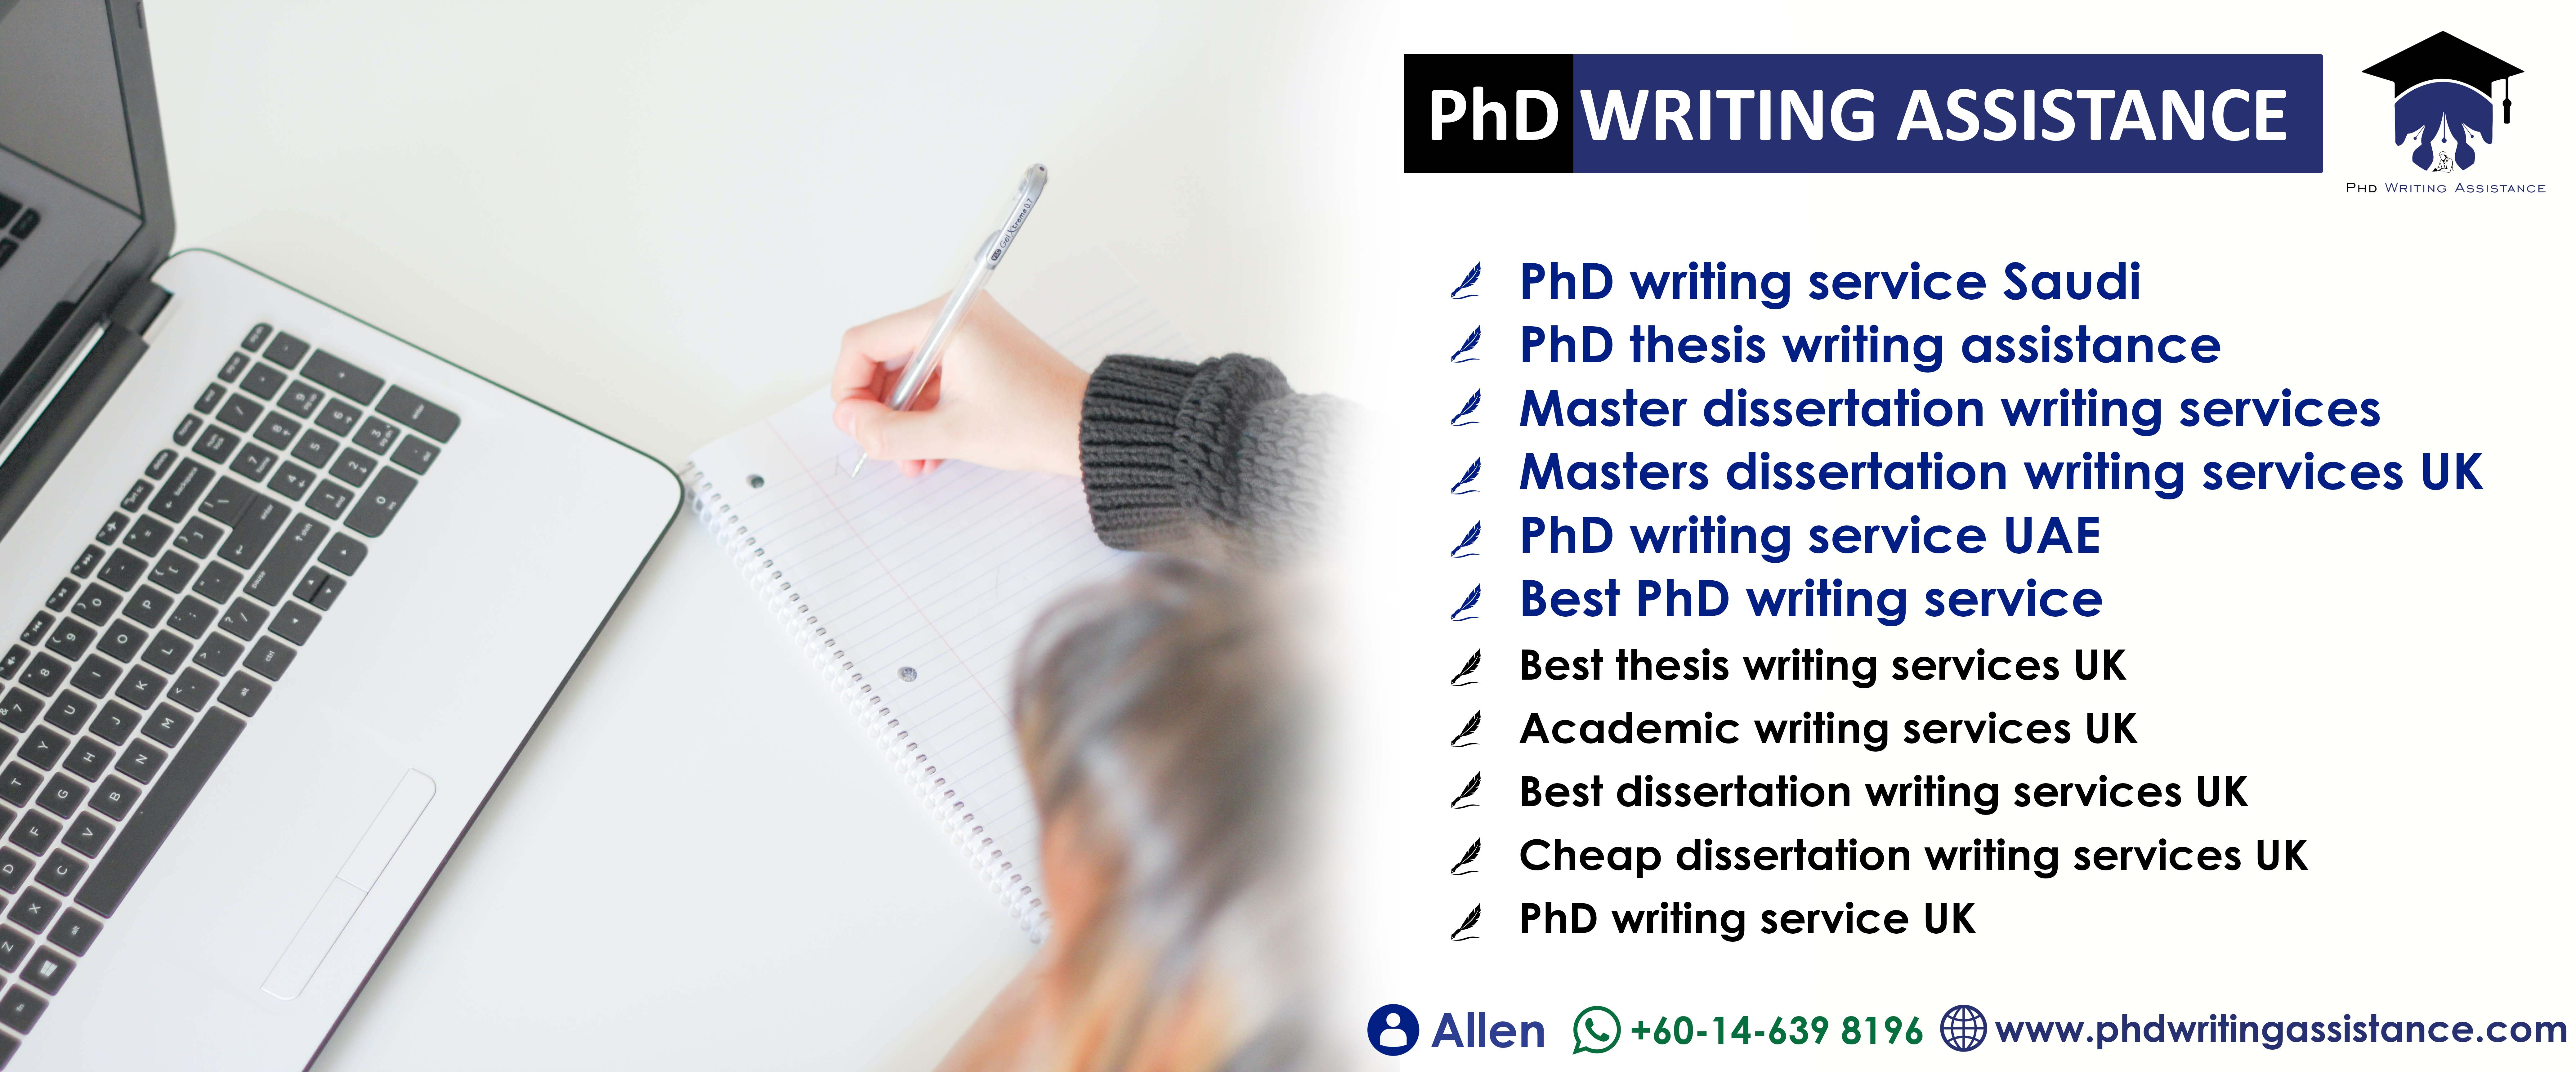 Cheap thesis writing services for phd how to write firmware